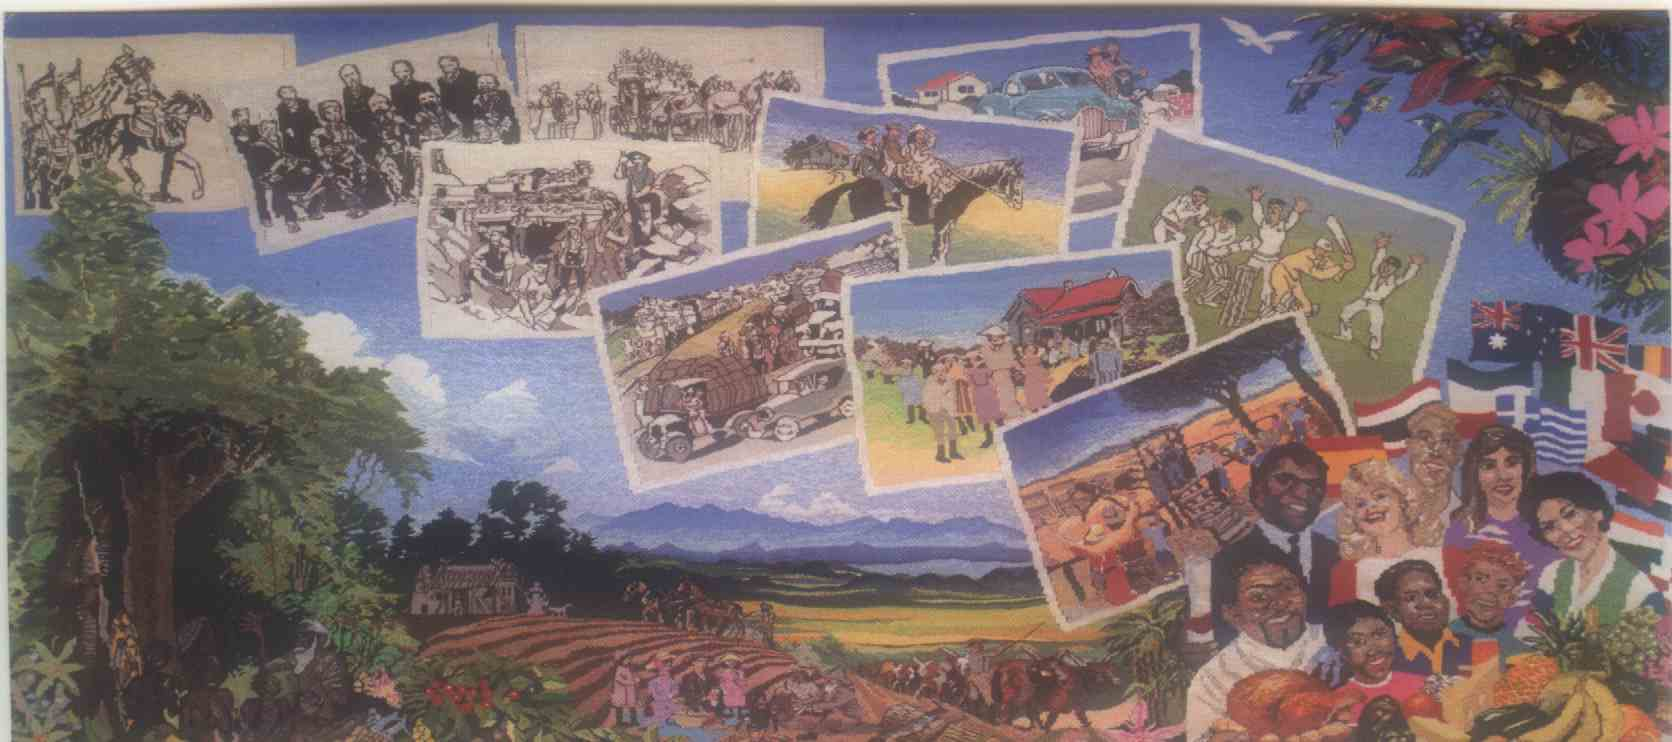 Centenary of Federation Tapestry Project